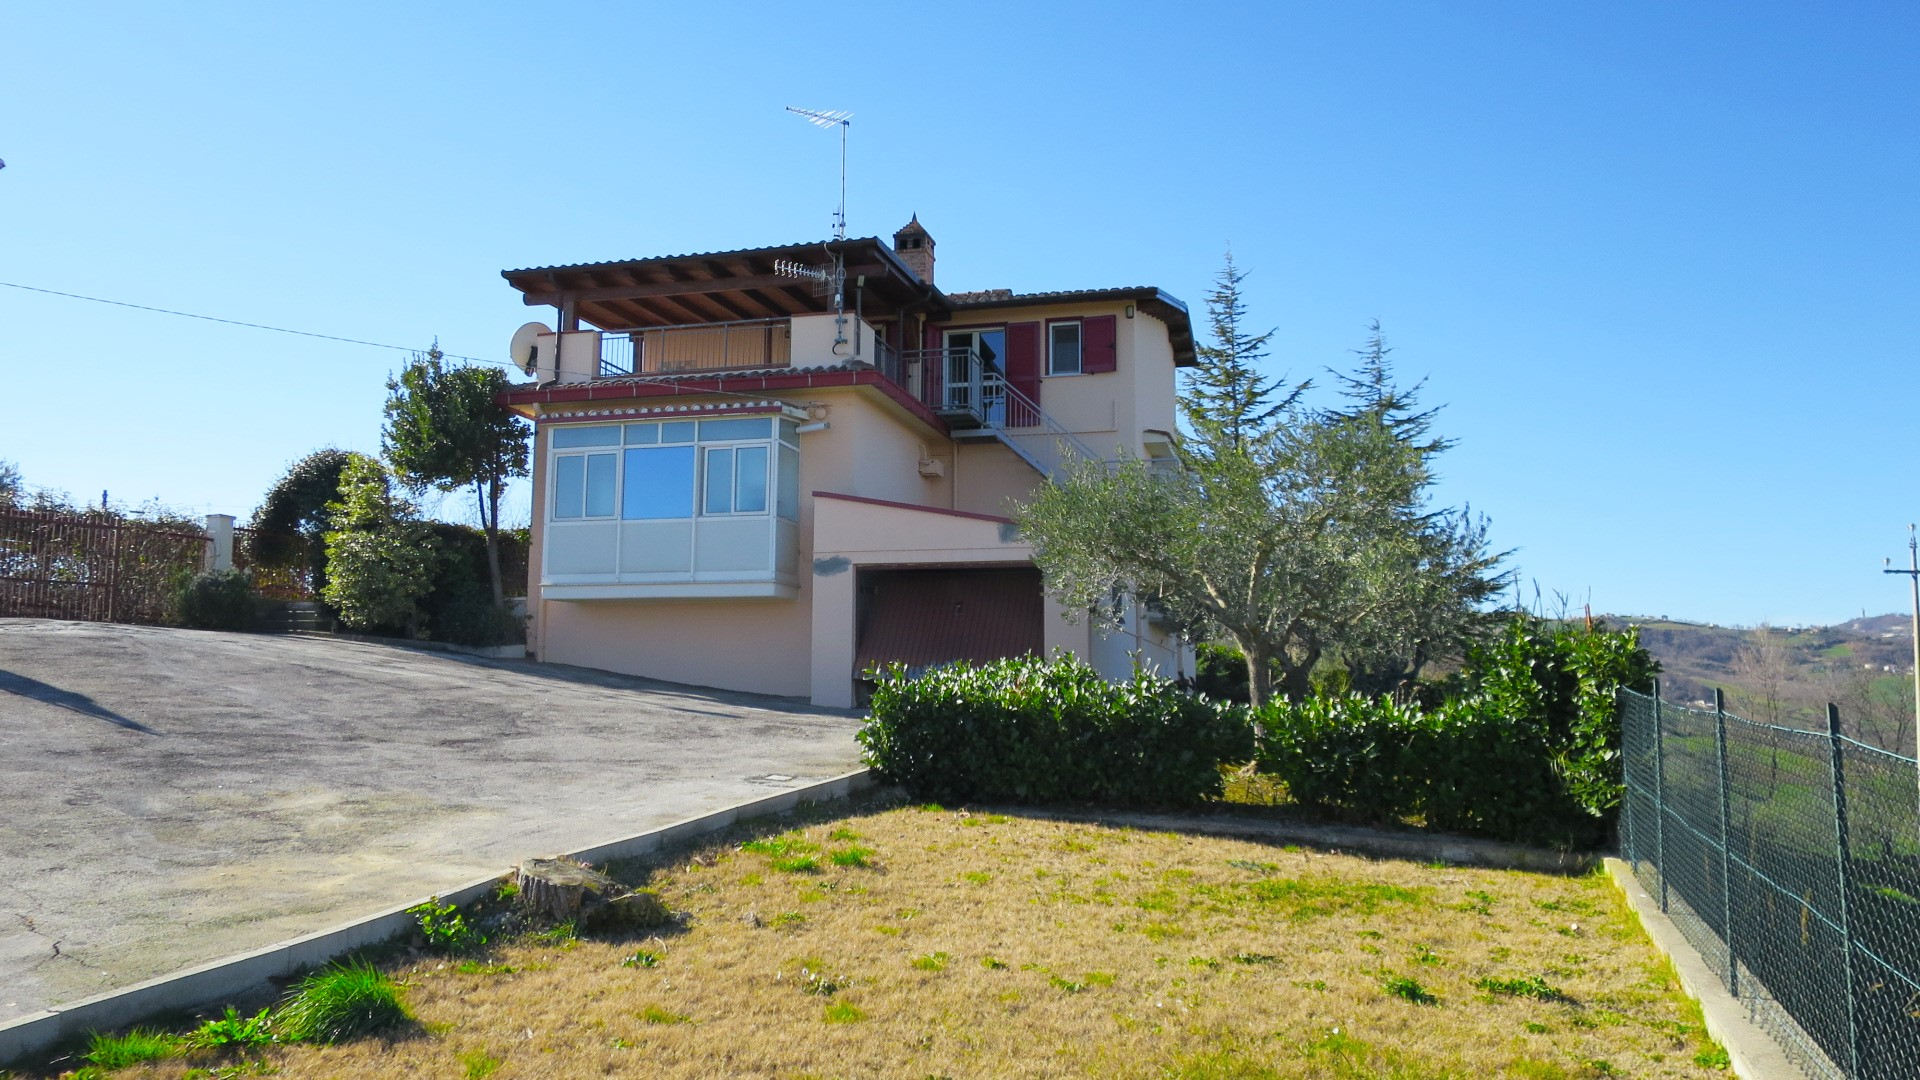 Country Houses Country Houses for sale Cellino Attanasio (TE), Casa Feudi - Cellino Attanasio - EUR 198.728 70